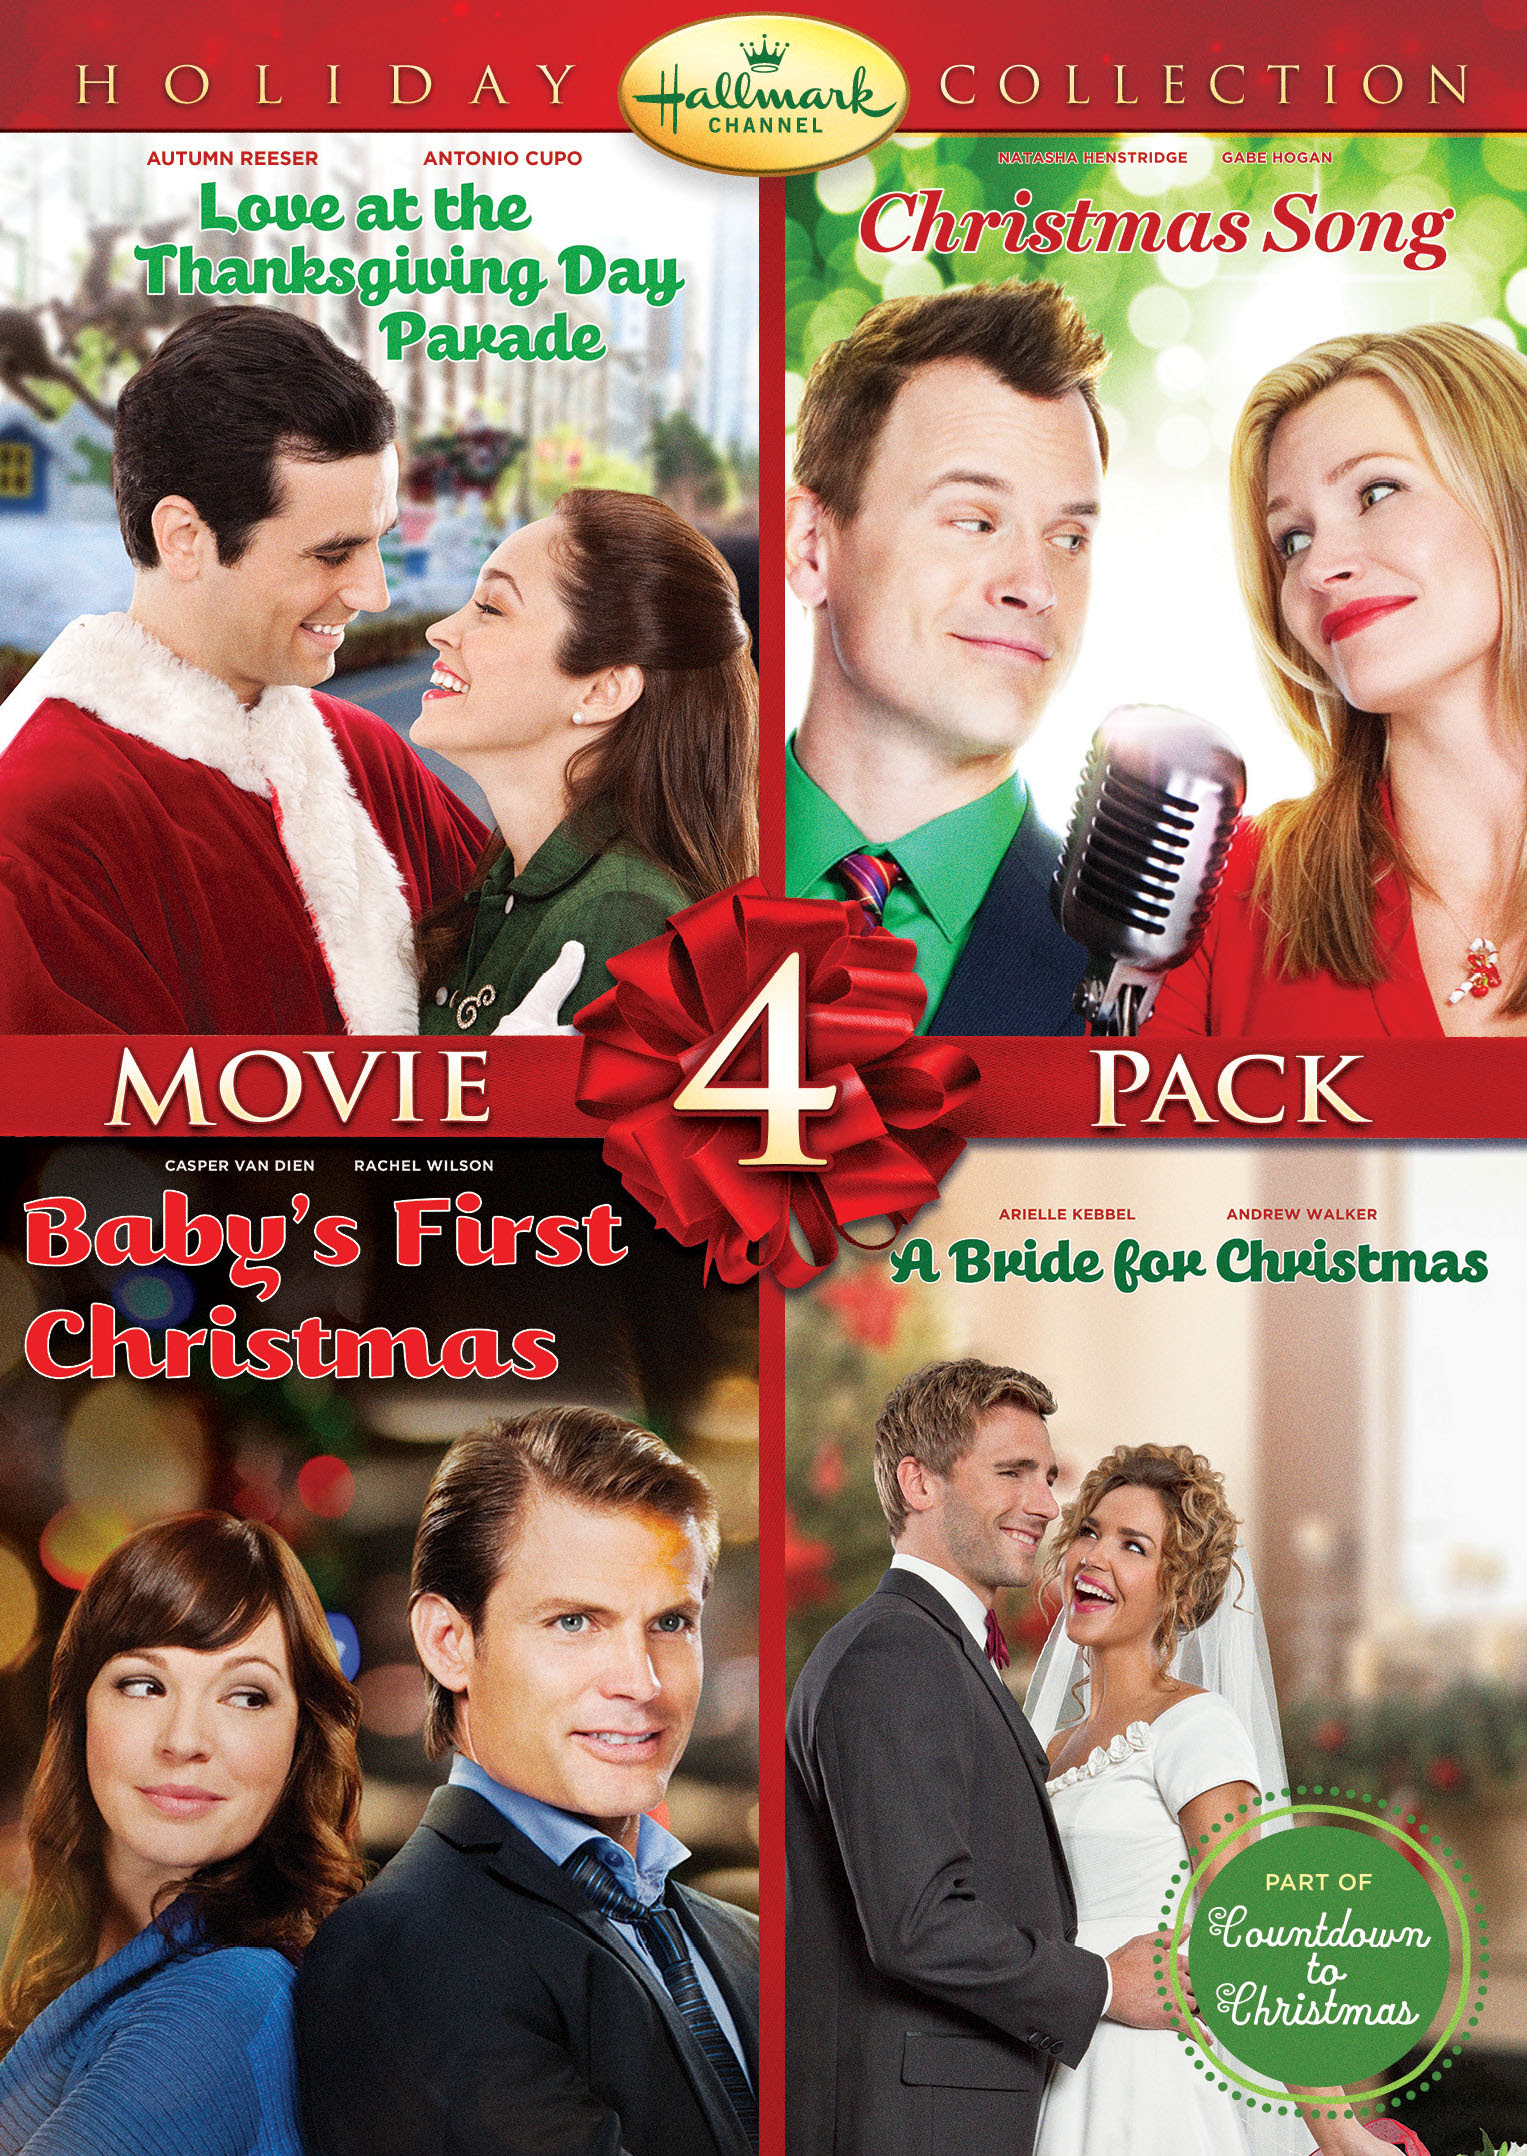 The Christmas Card Hallmark Dvd - Natal Kau